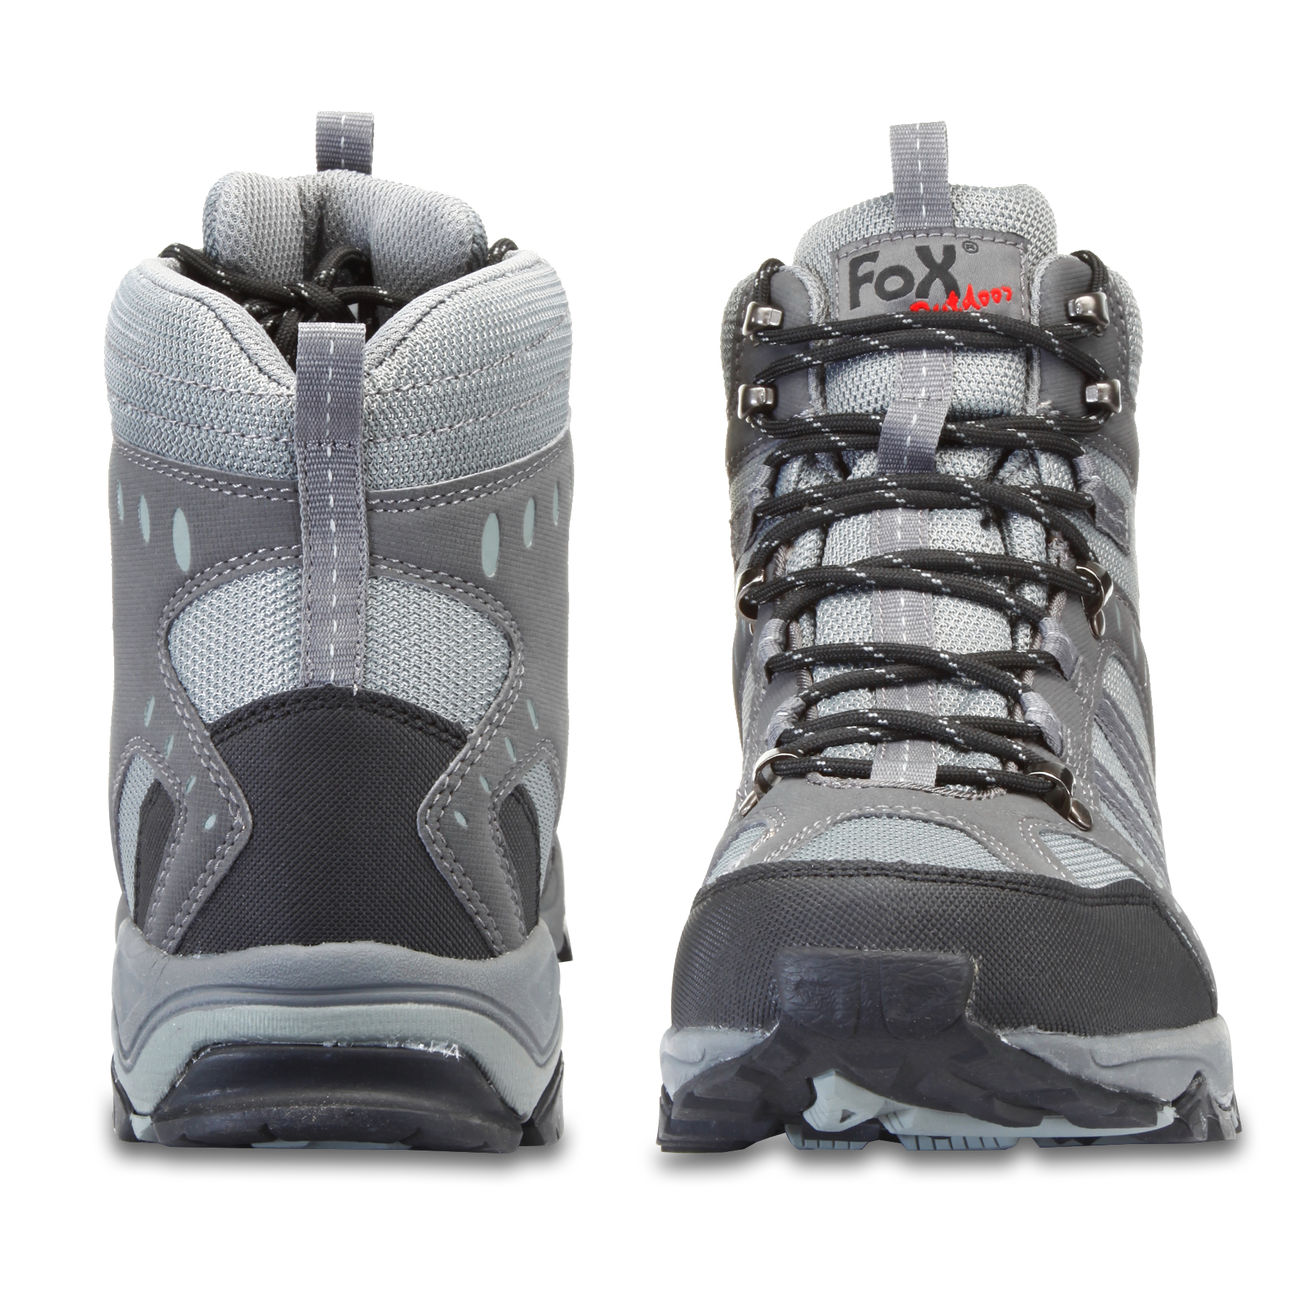 Fox Outdoor Trekkingschuh Mountain High grau 4